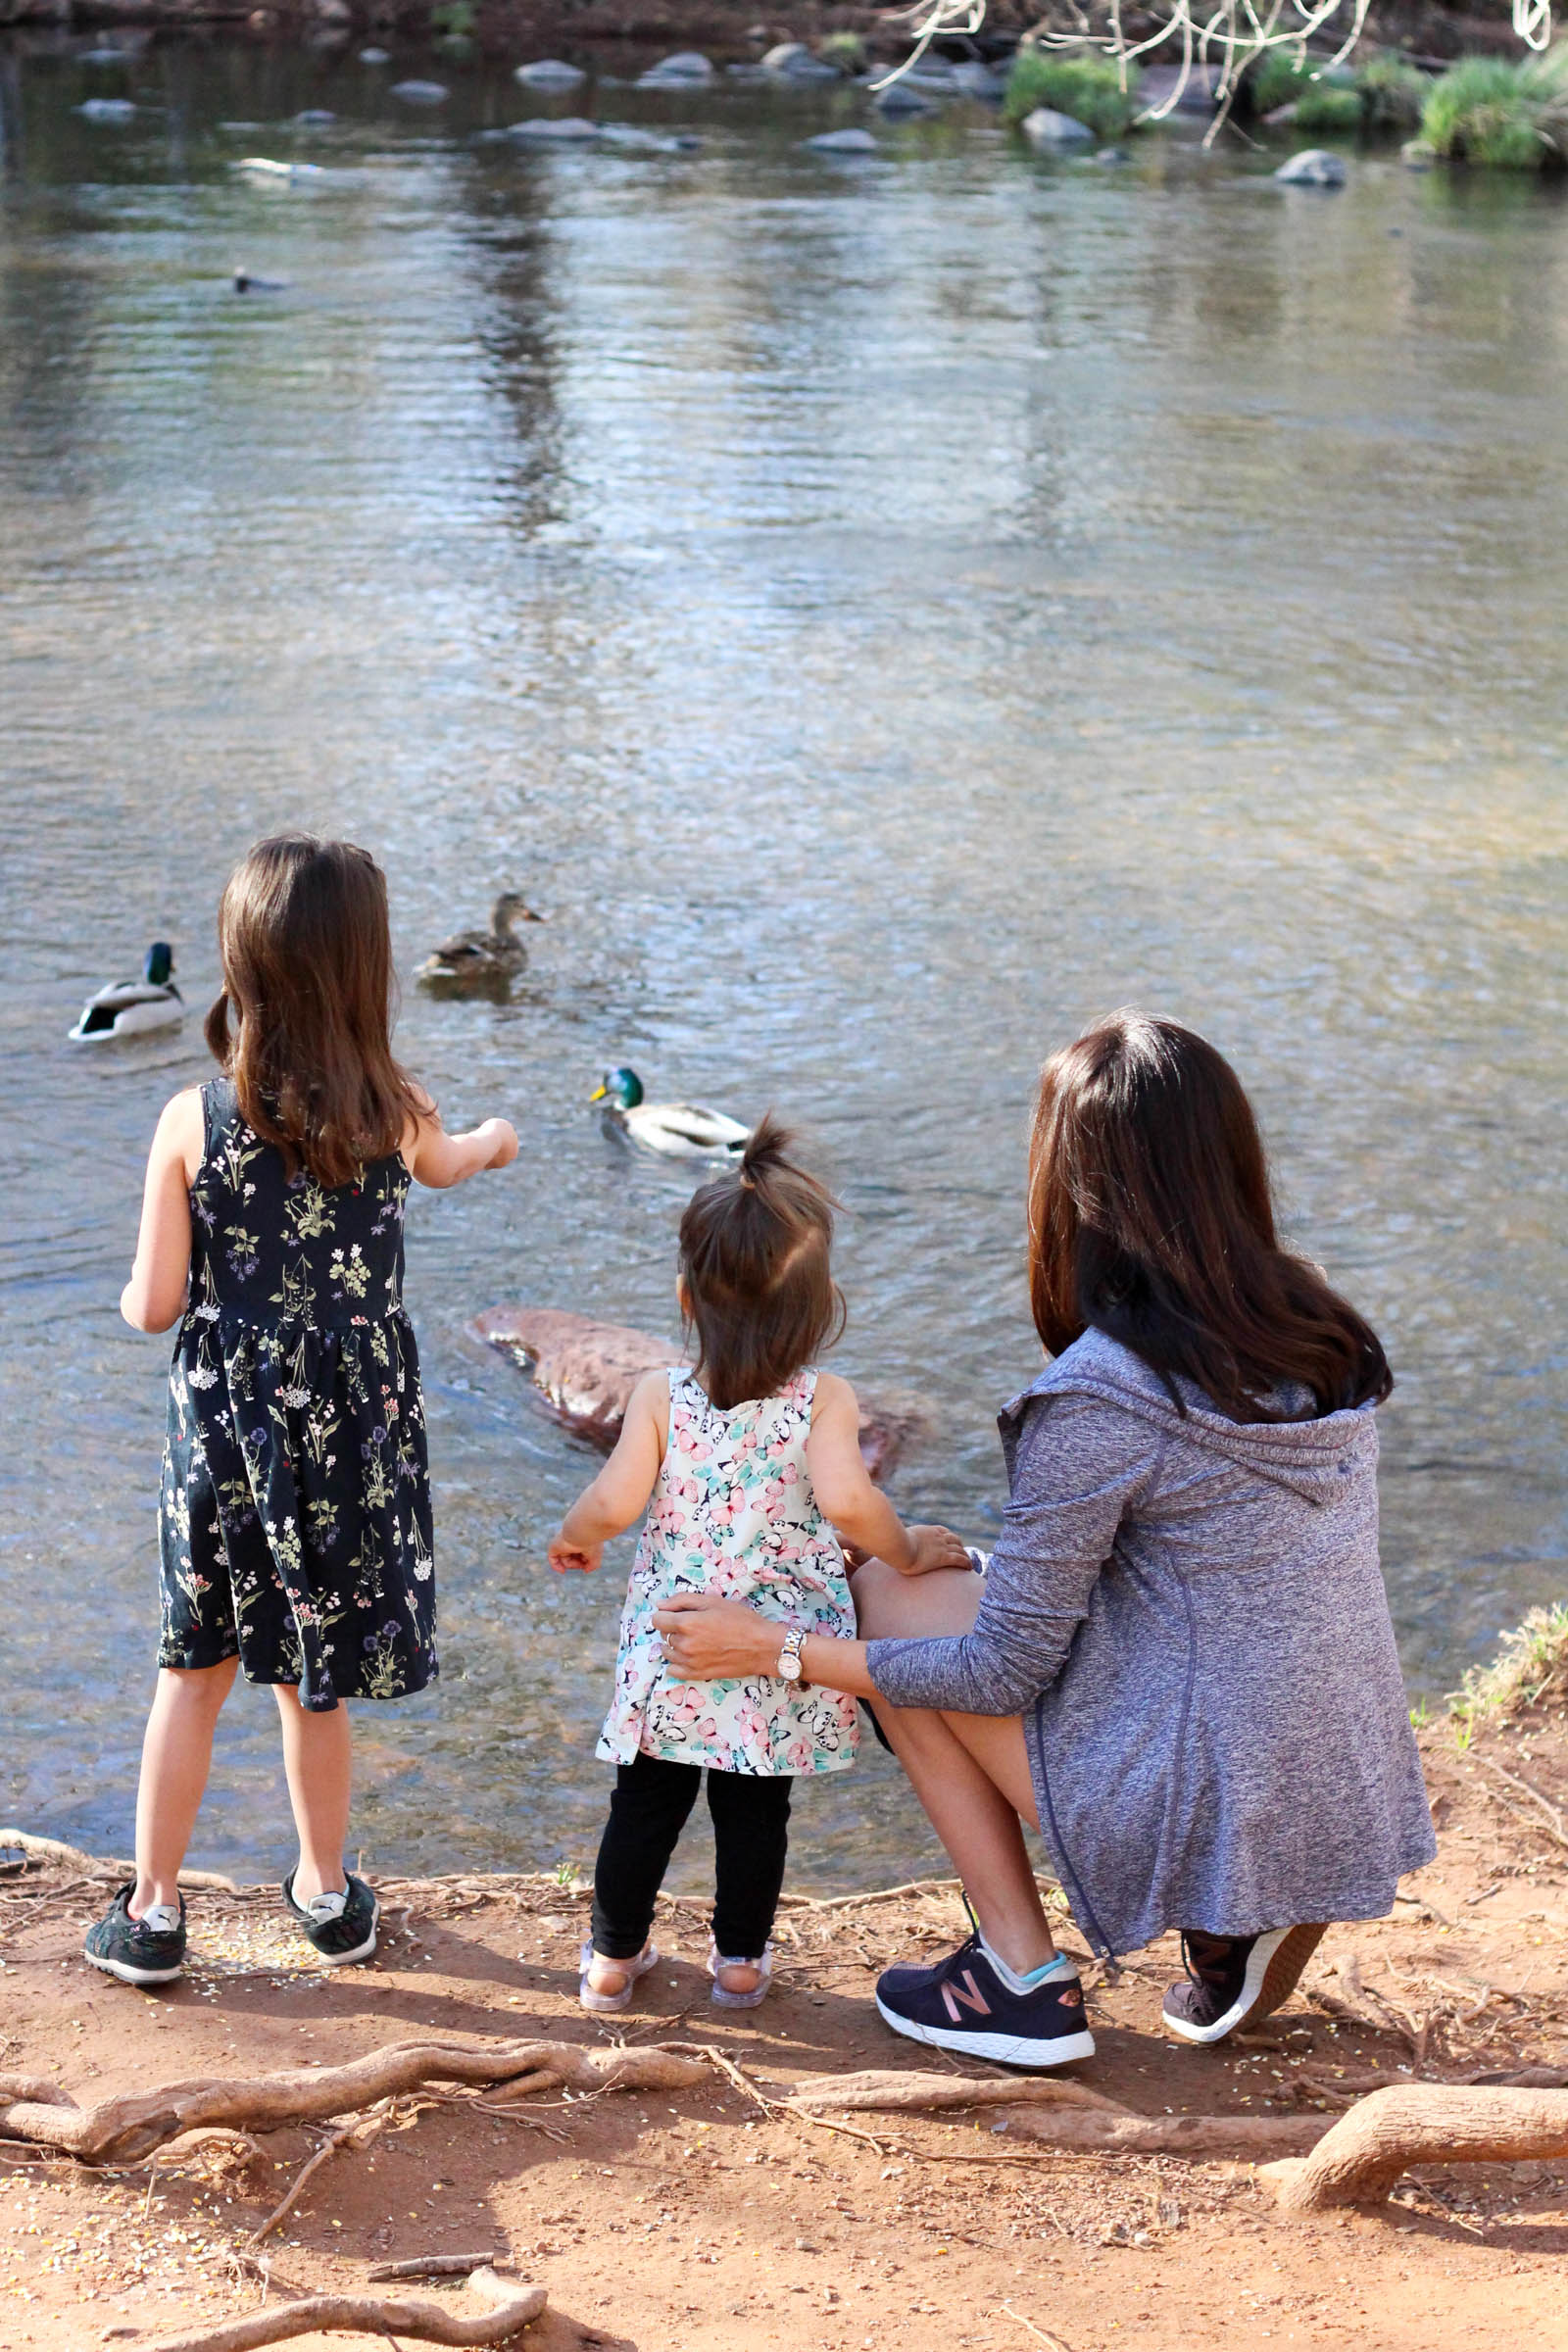 The girls and me feeding ducks at L'Auberge de Sedona